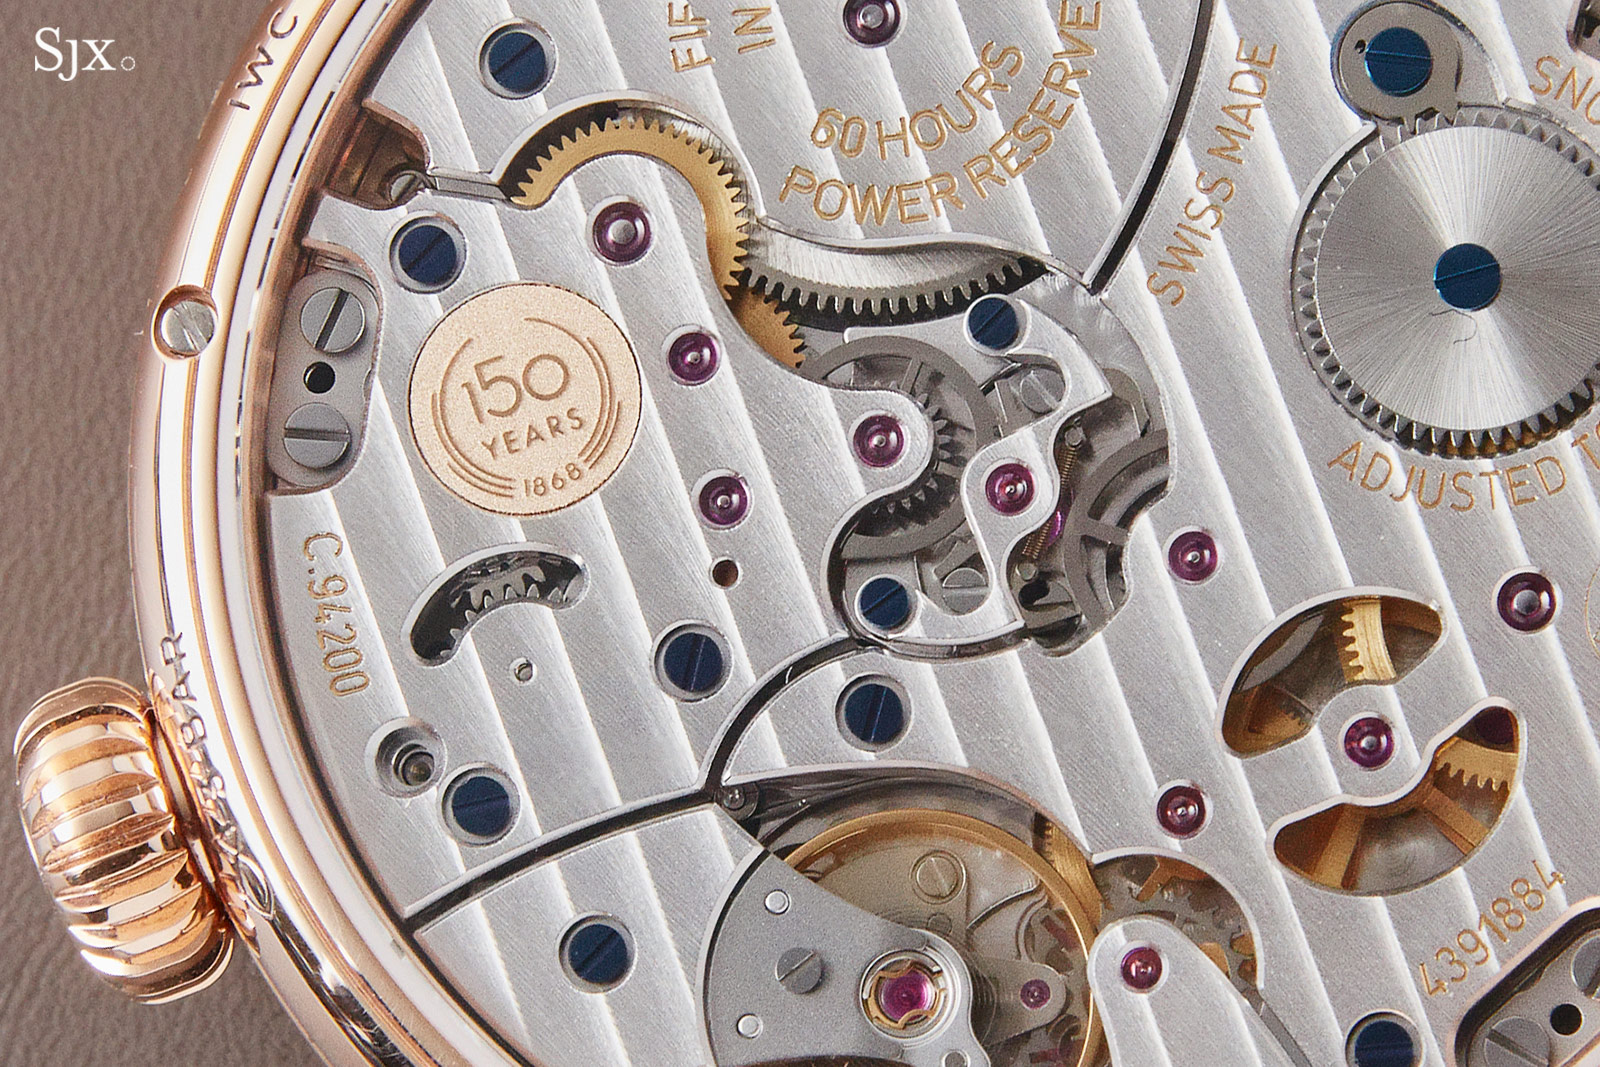 IWC Pallweber movement 94200